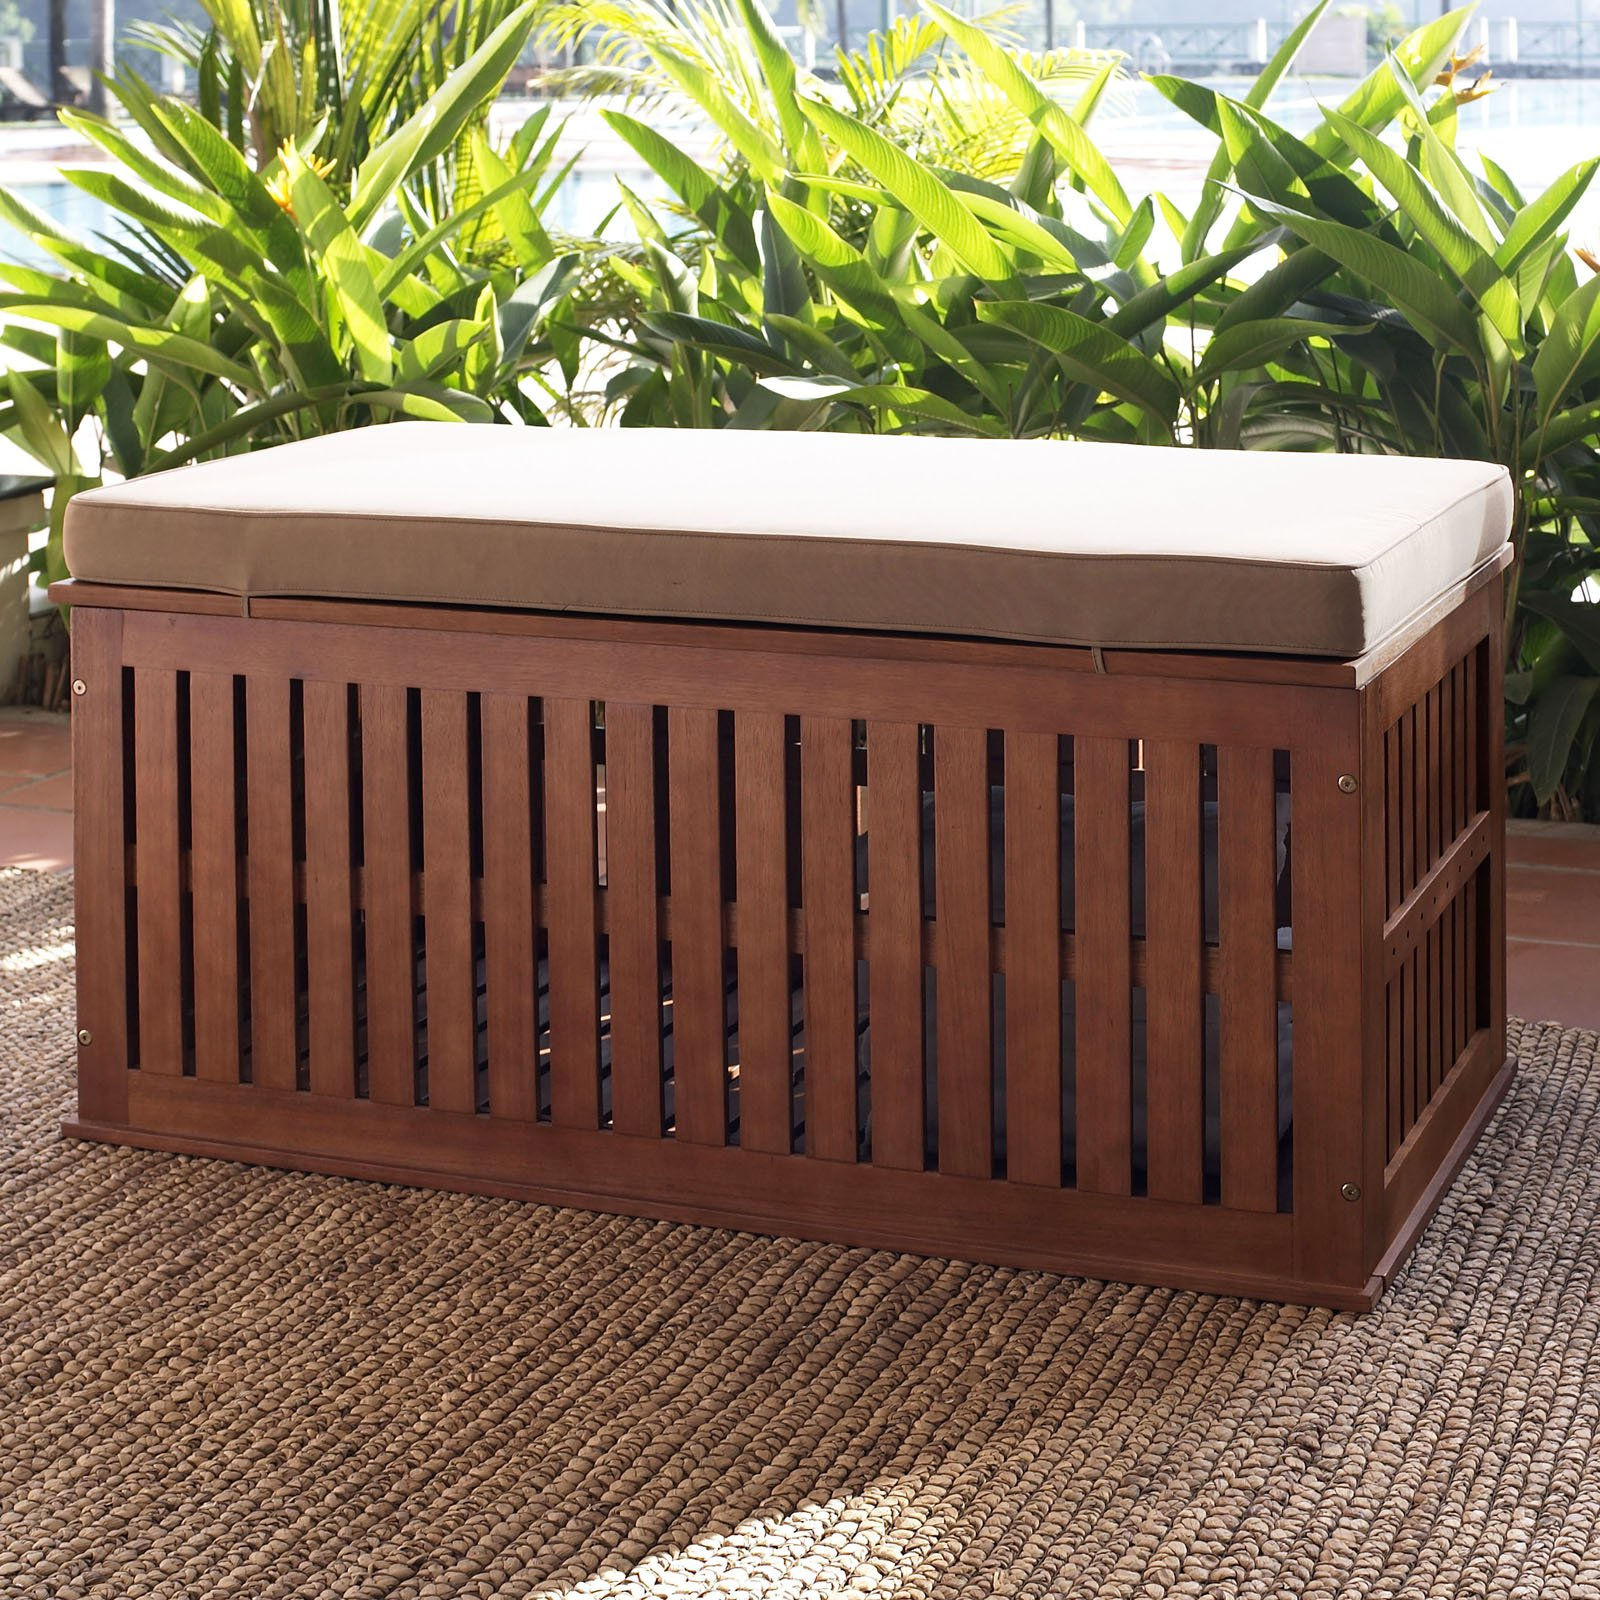 Coral Coast Parkway 47 in. Outdoor Wood 70-Gallon Storage Deck Box with Cushion by